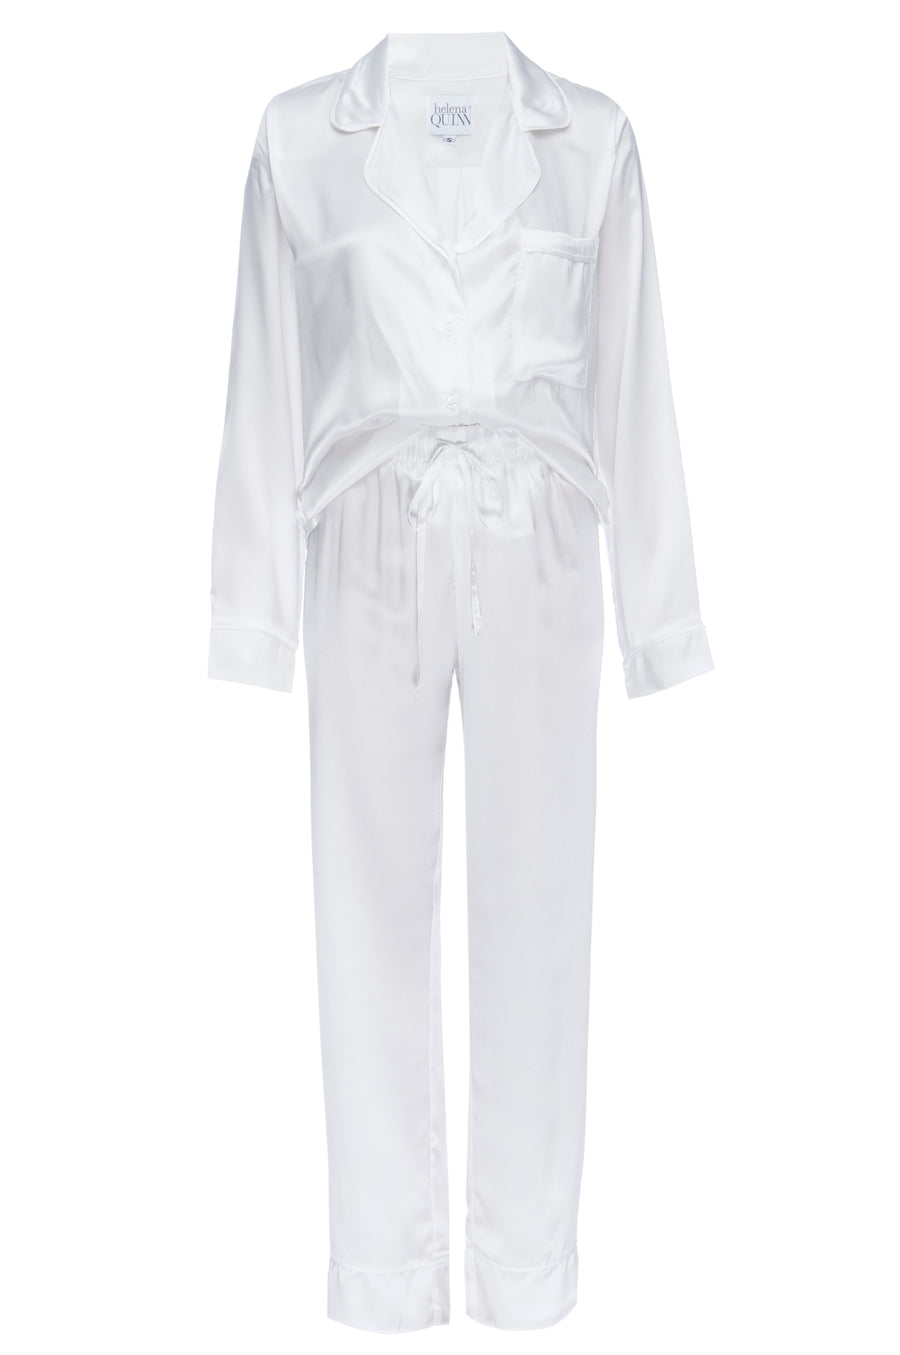 Silk Charmeuse Long Sleeved PJ Top + Pant Set: Ivory